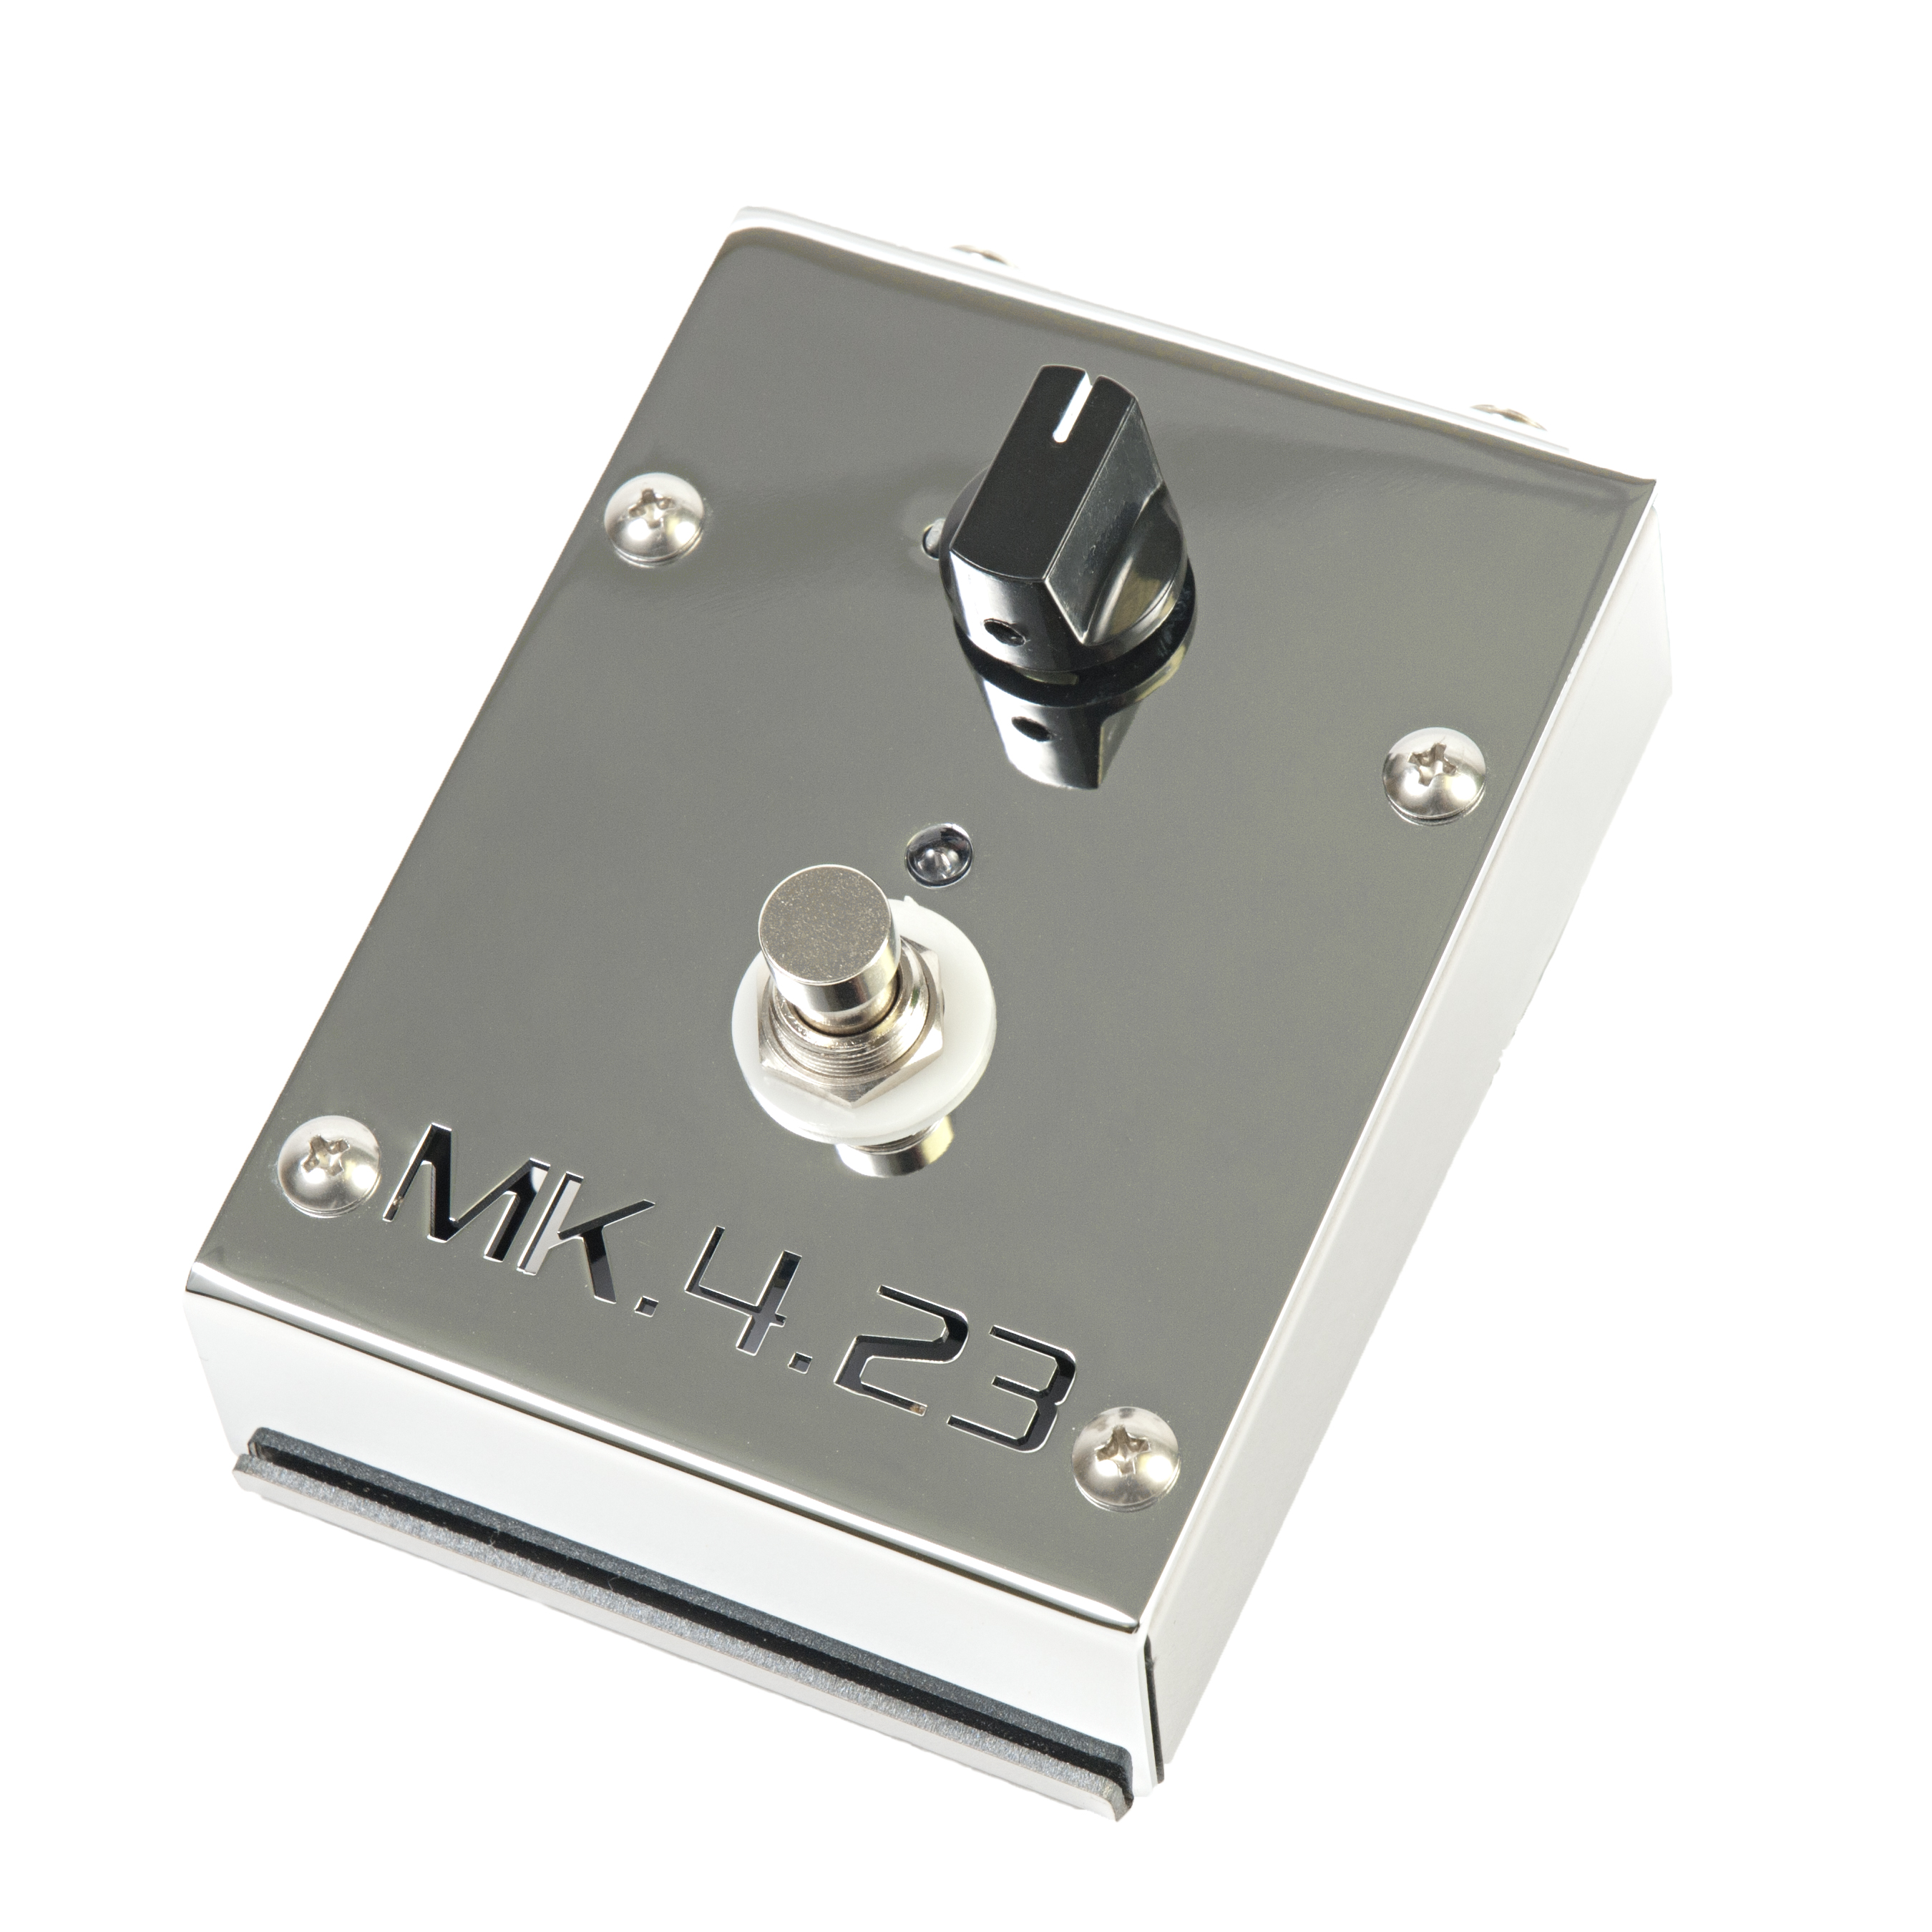 MK.4.23 Chrome - boost pedal profile